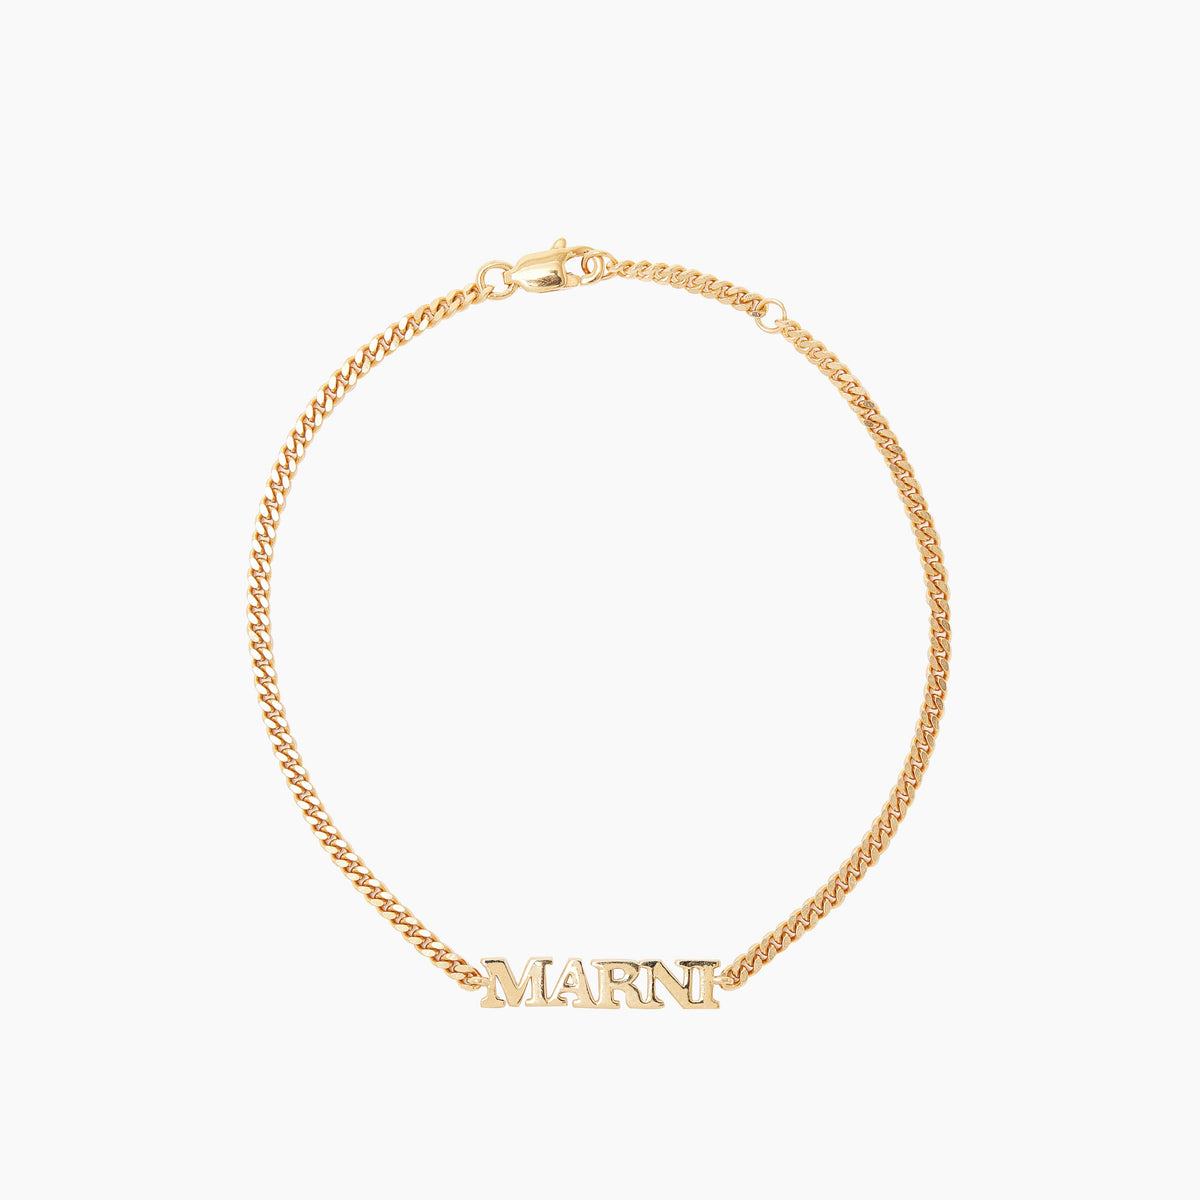 Personalised Name Bracelet (Vermeil)